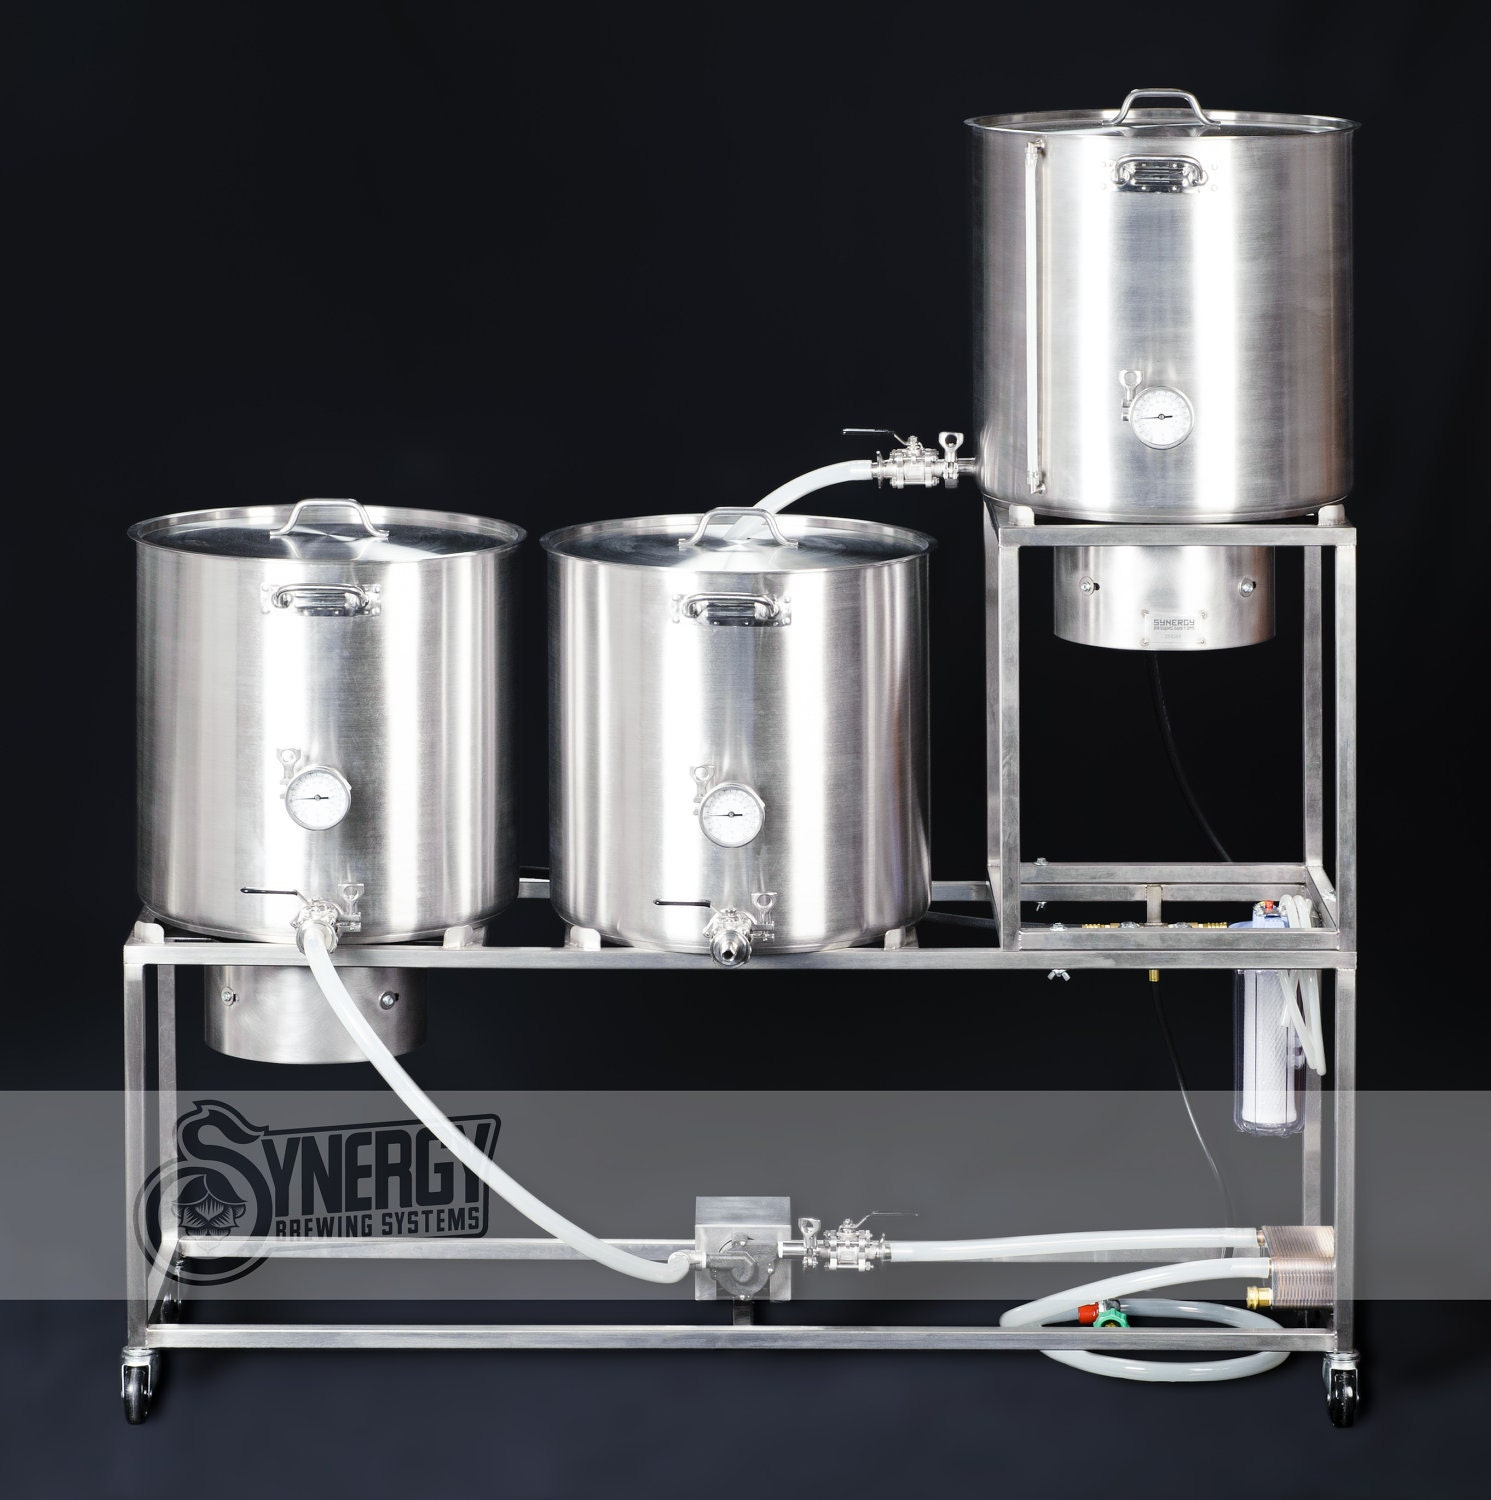 Home beer brewing system handbuilt by Synergy Brewing Systems